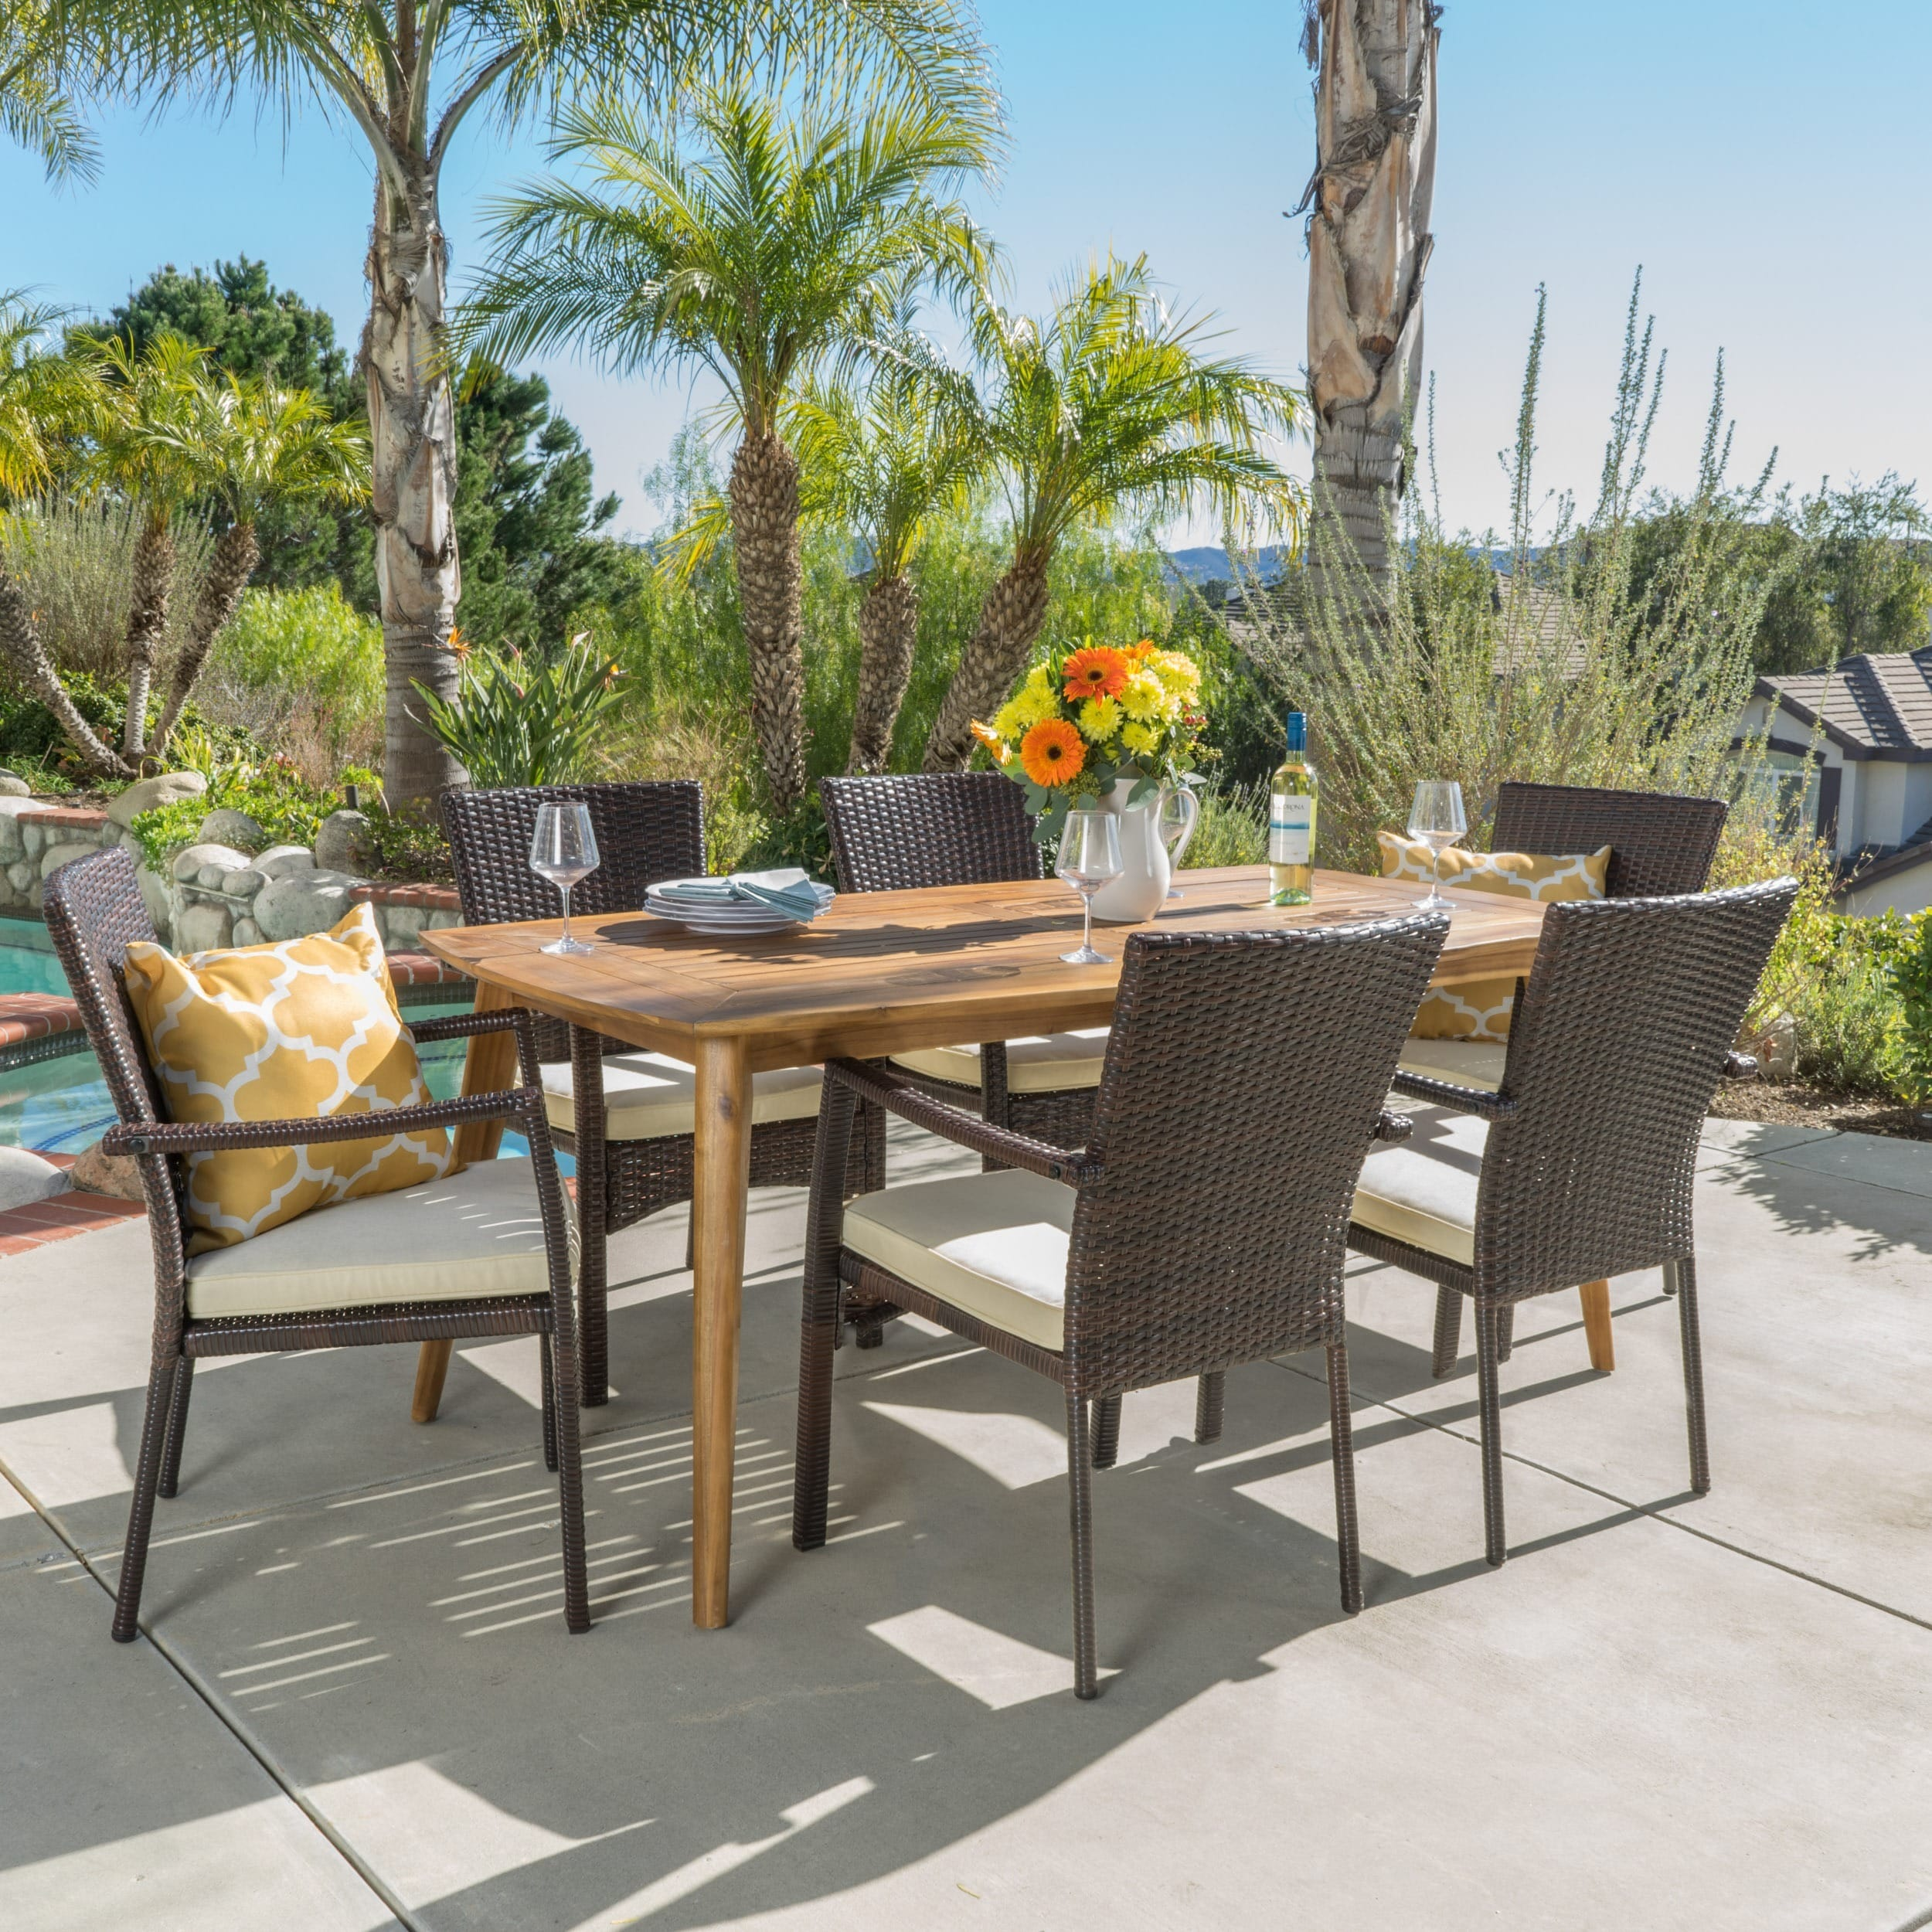 Talbot Outdoor 7-piece Wood Rectangle Dining Set with Cus...